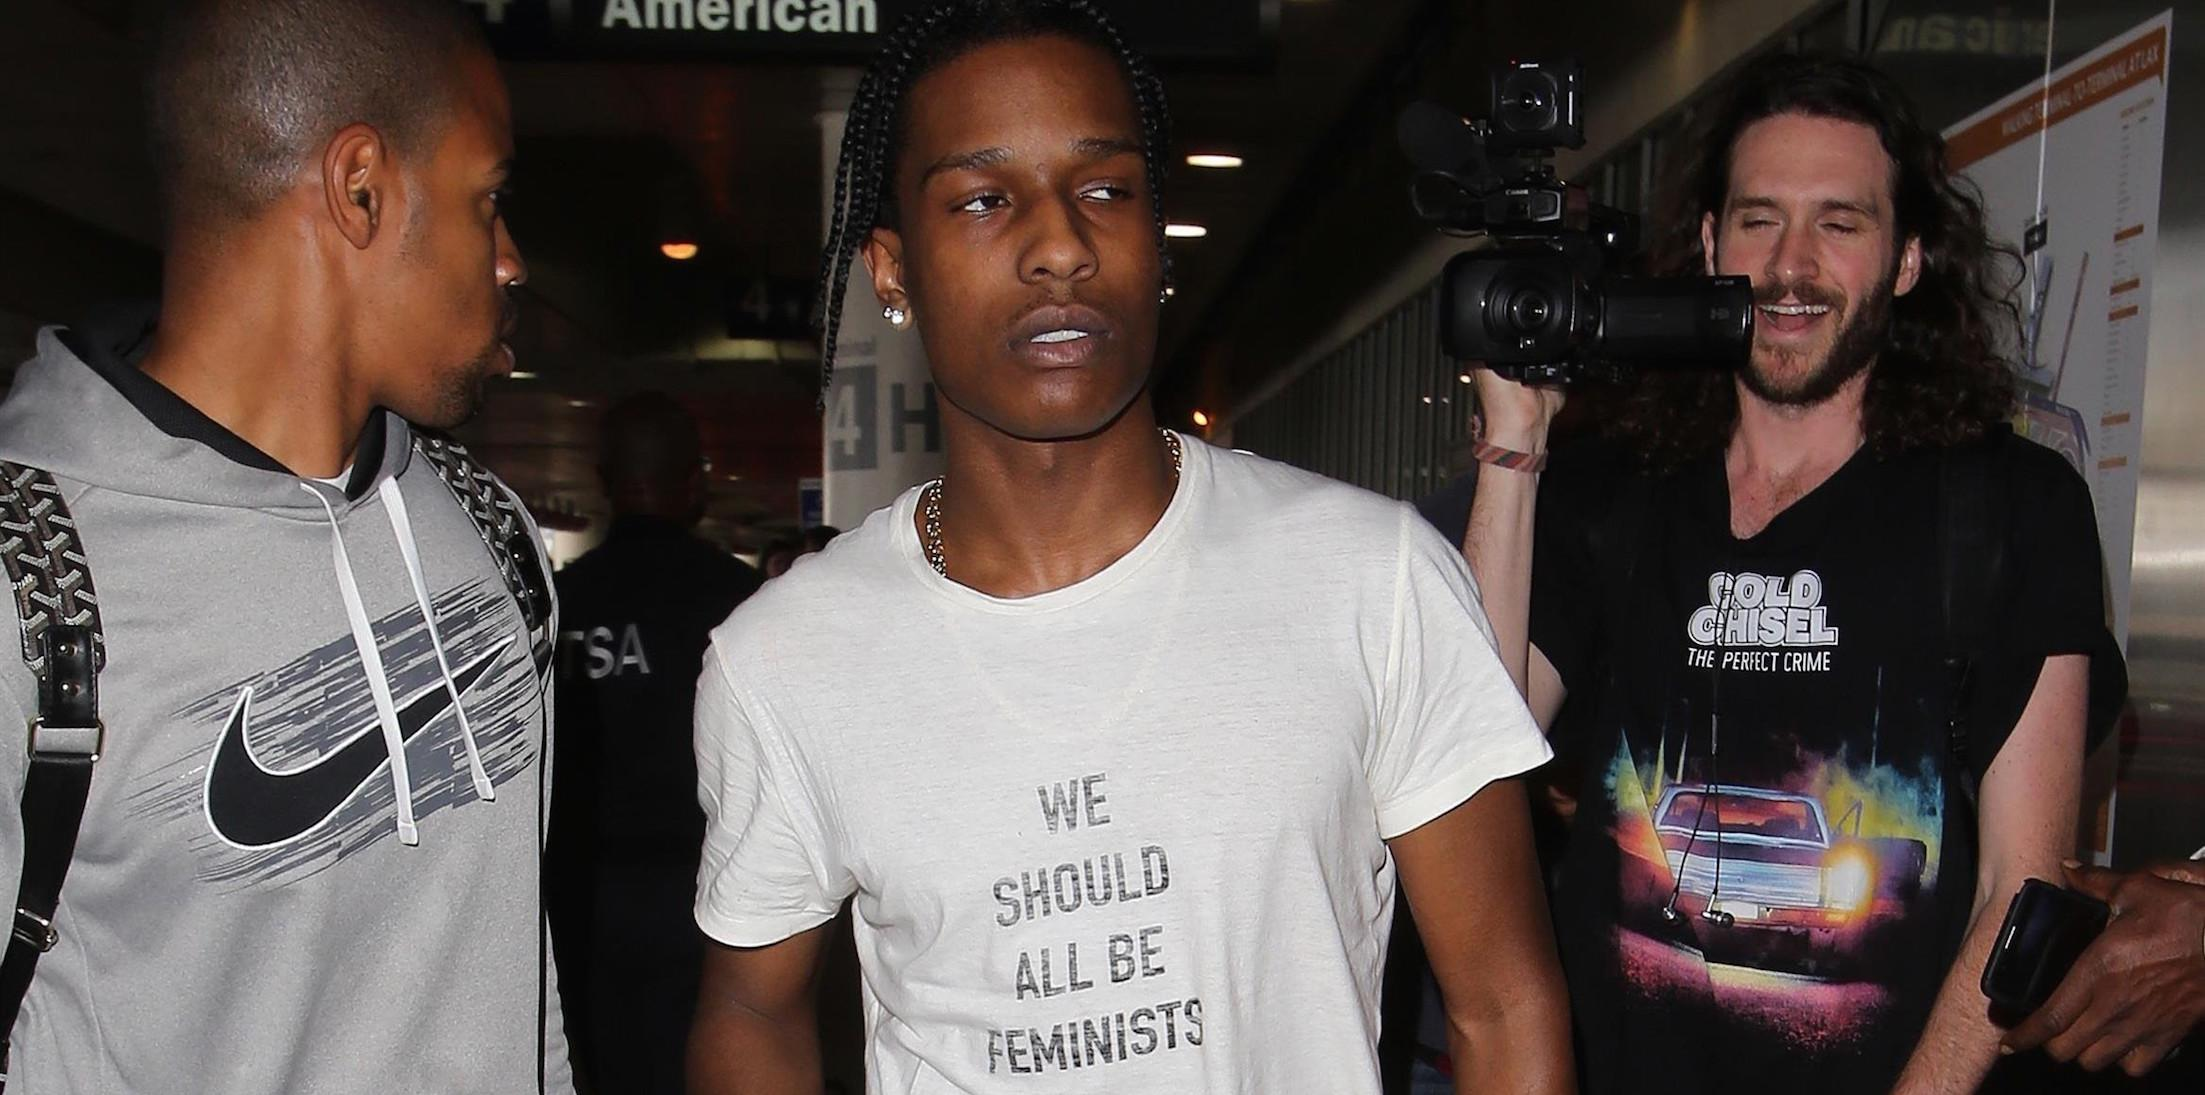 A$AP Rocky wearing Kendall Jenner's Feminist Tee?